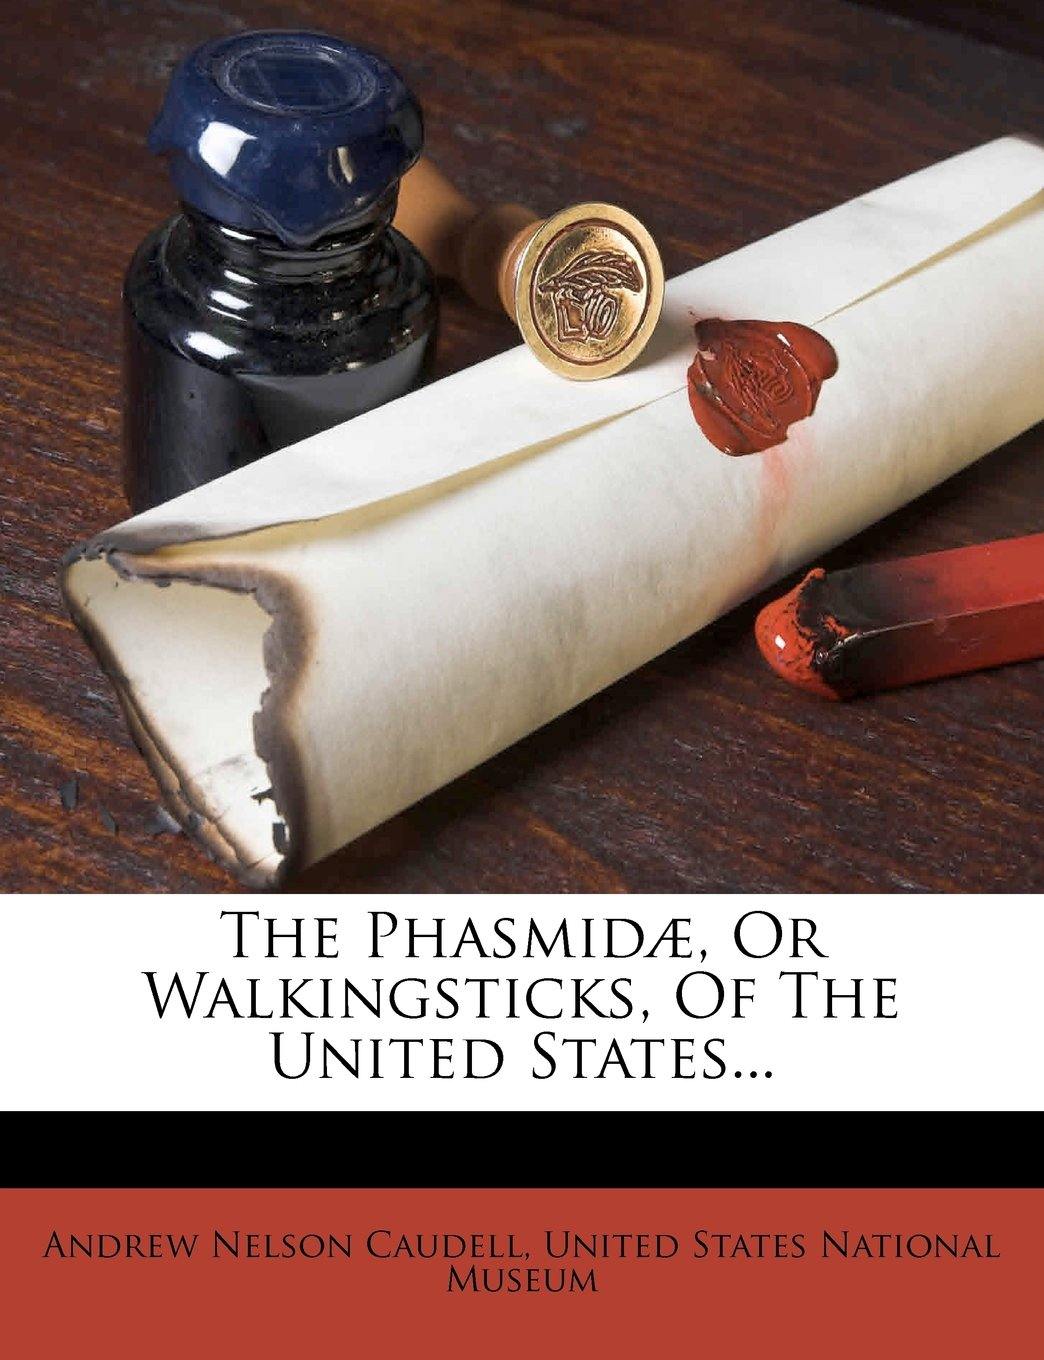 The Phasmidæ, Or Walkingsticks, Of The United States... pdf